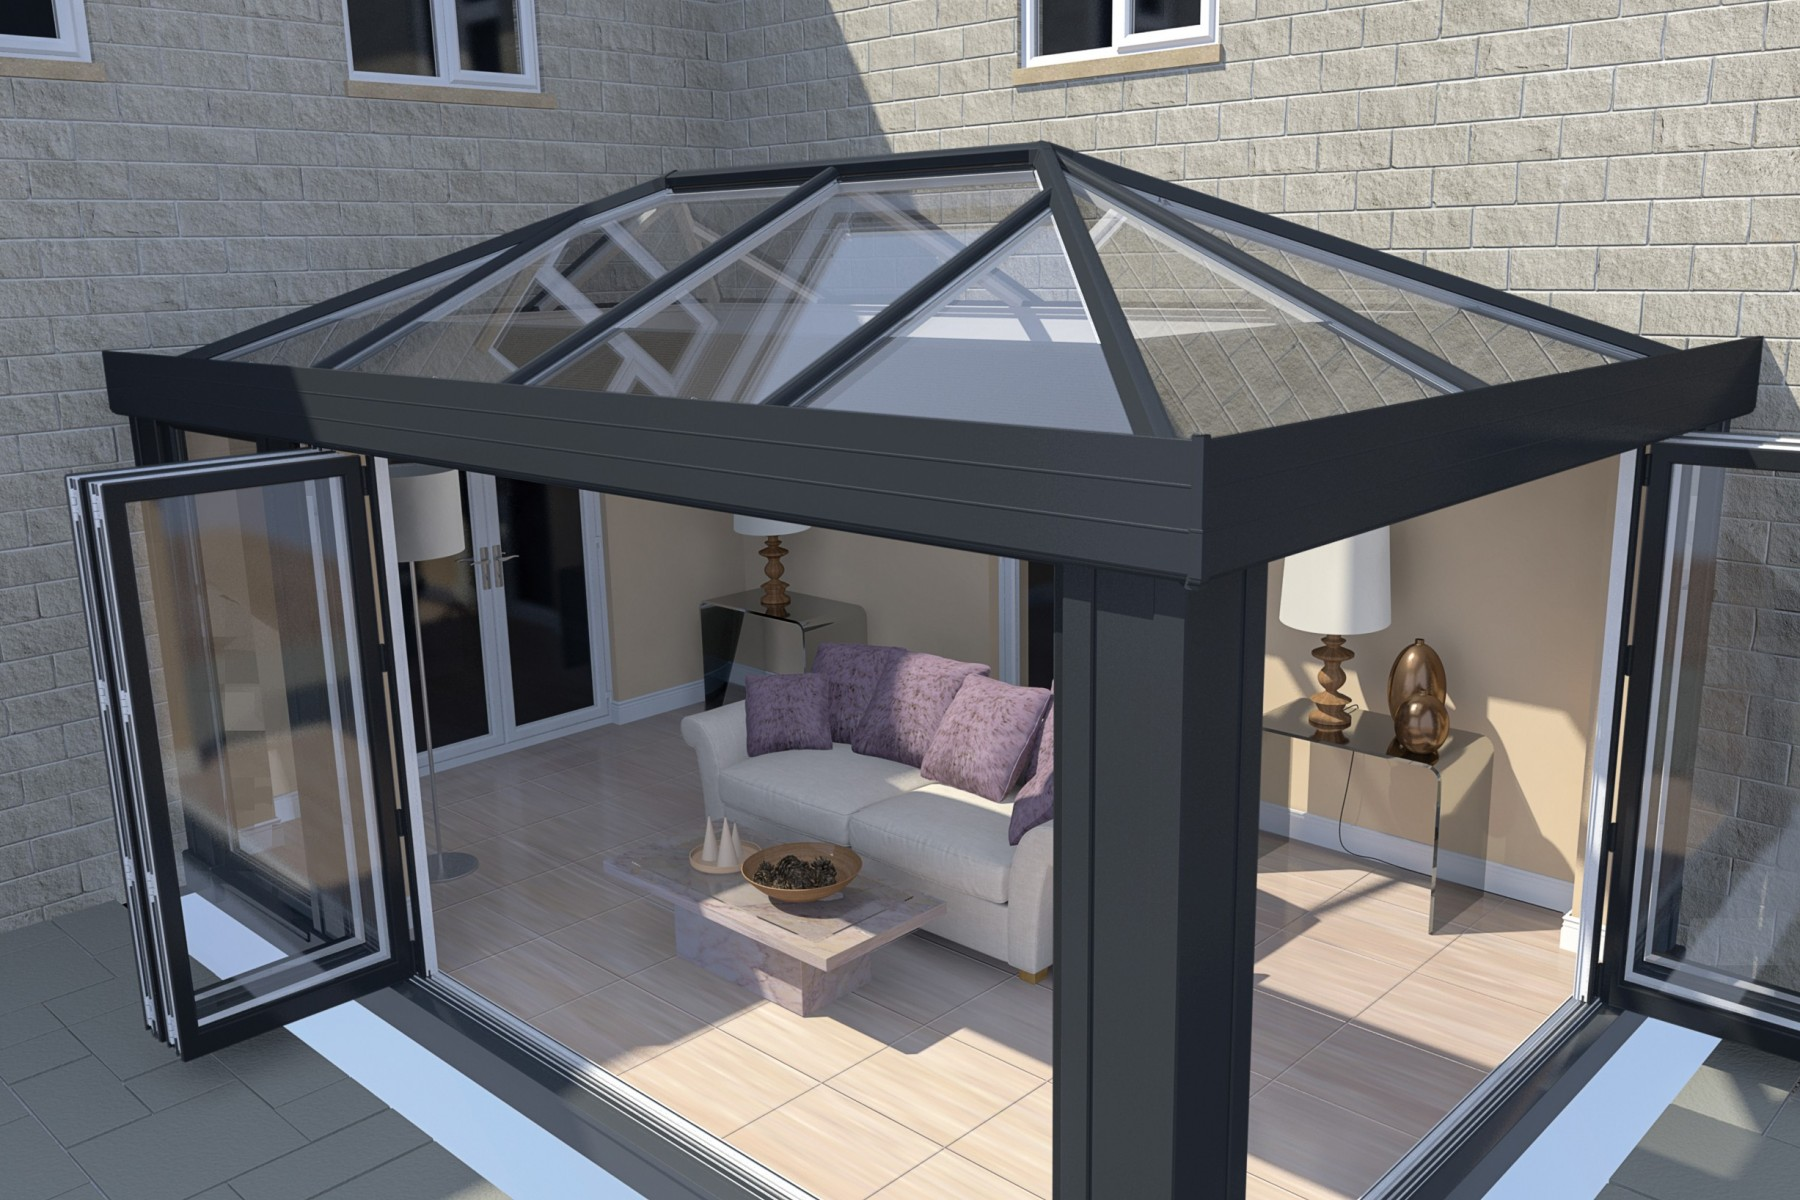 Structural Goal Post | House Extensions | Ultraframe